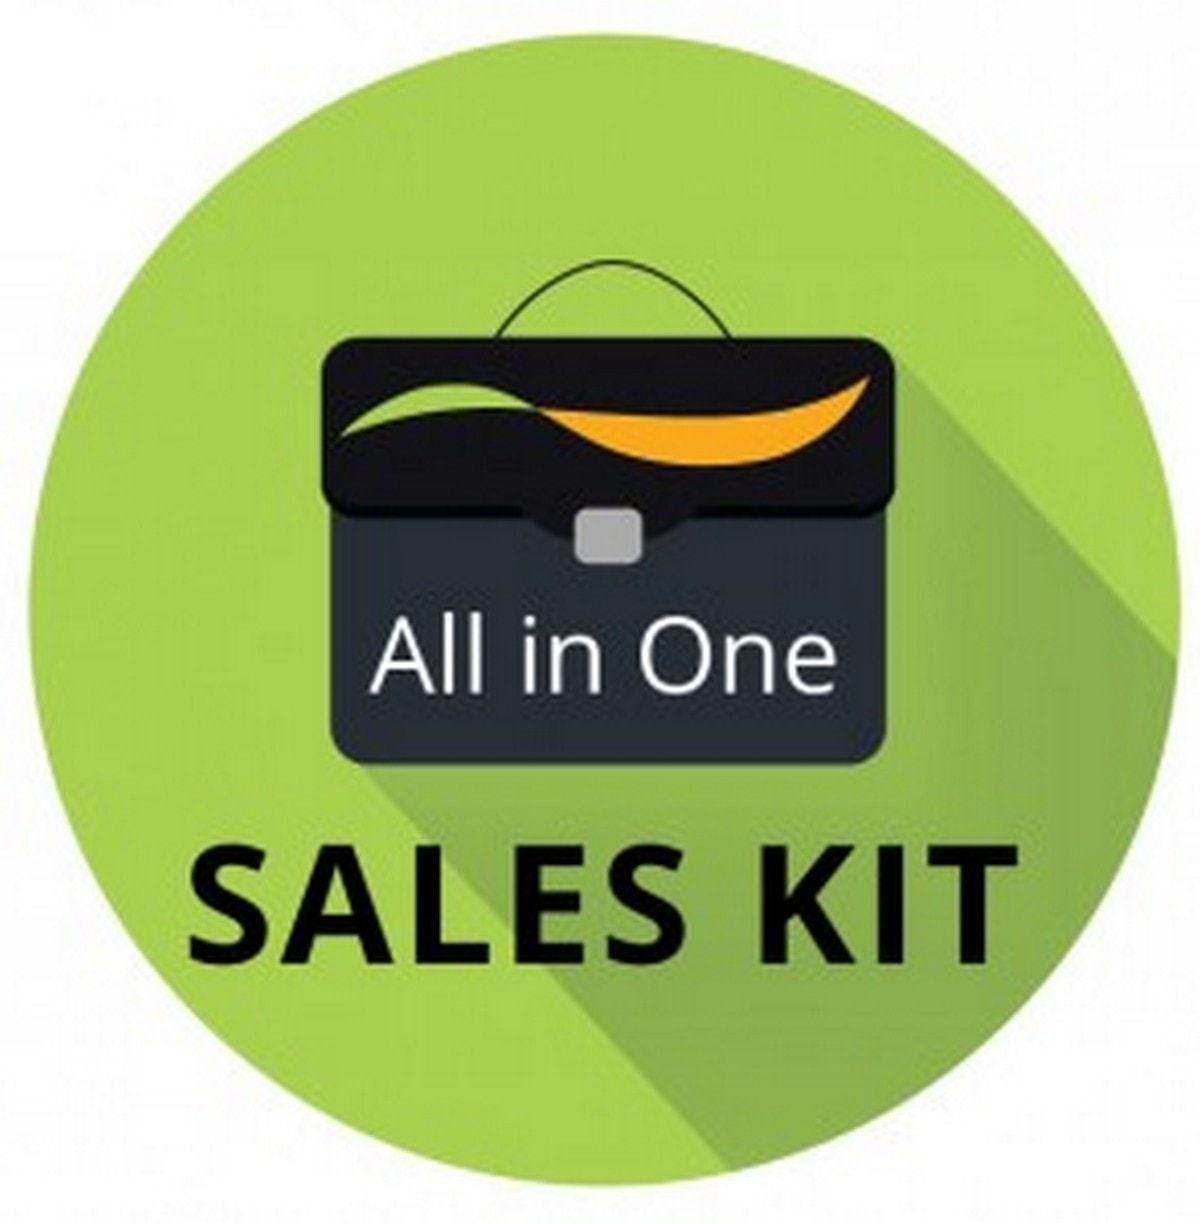 6 Contents of a Sales Kit and Advantages of Sales Kit